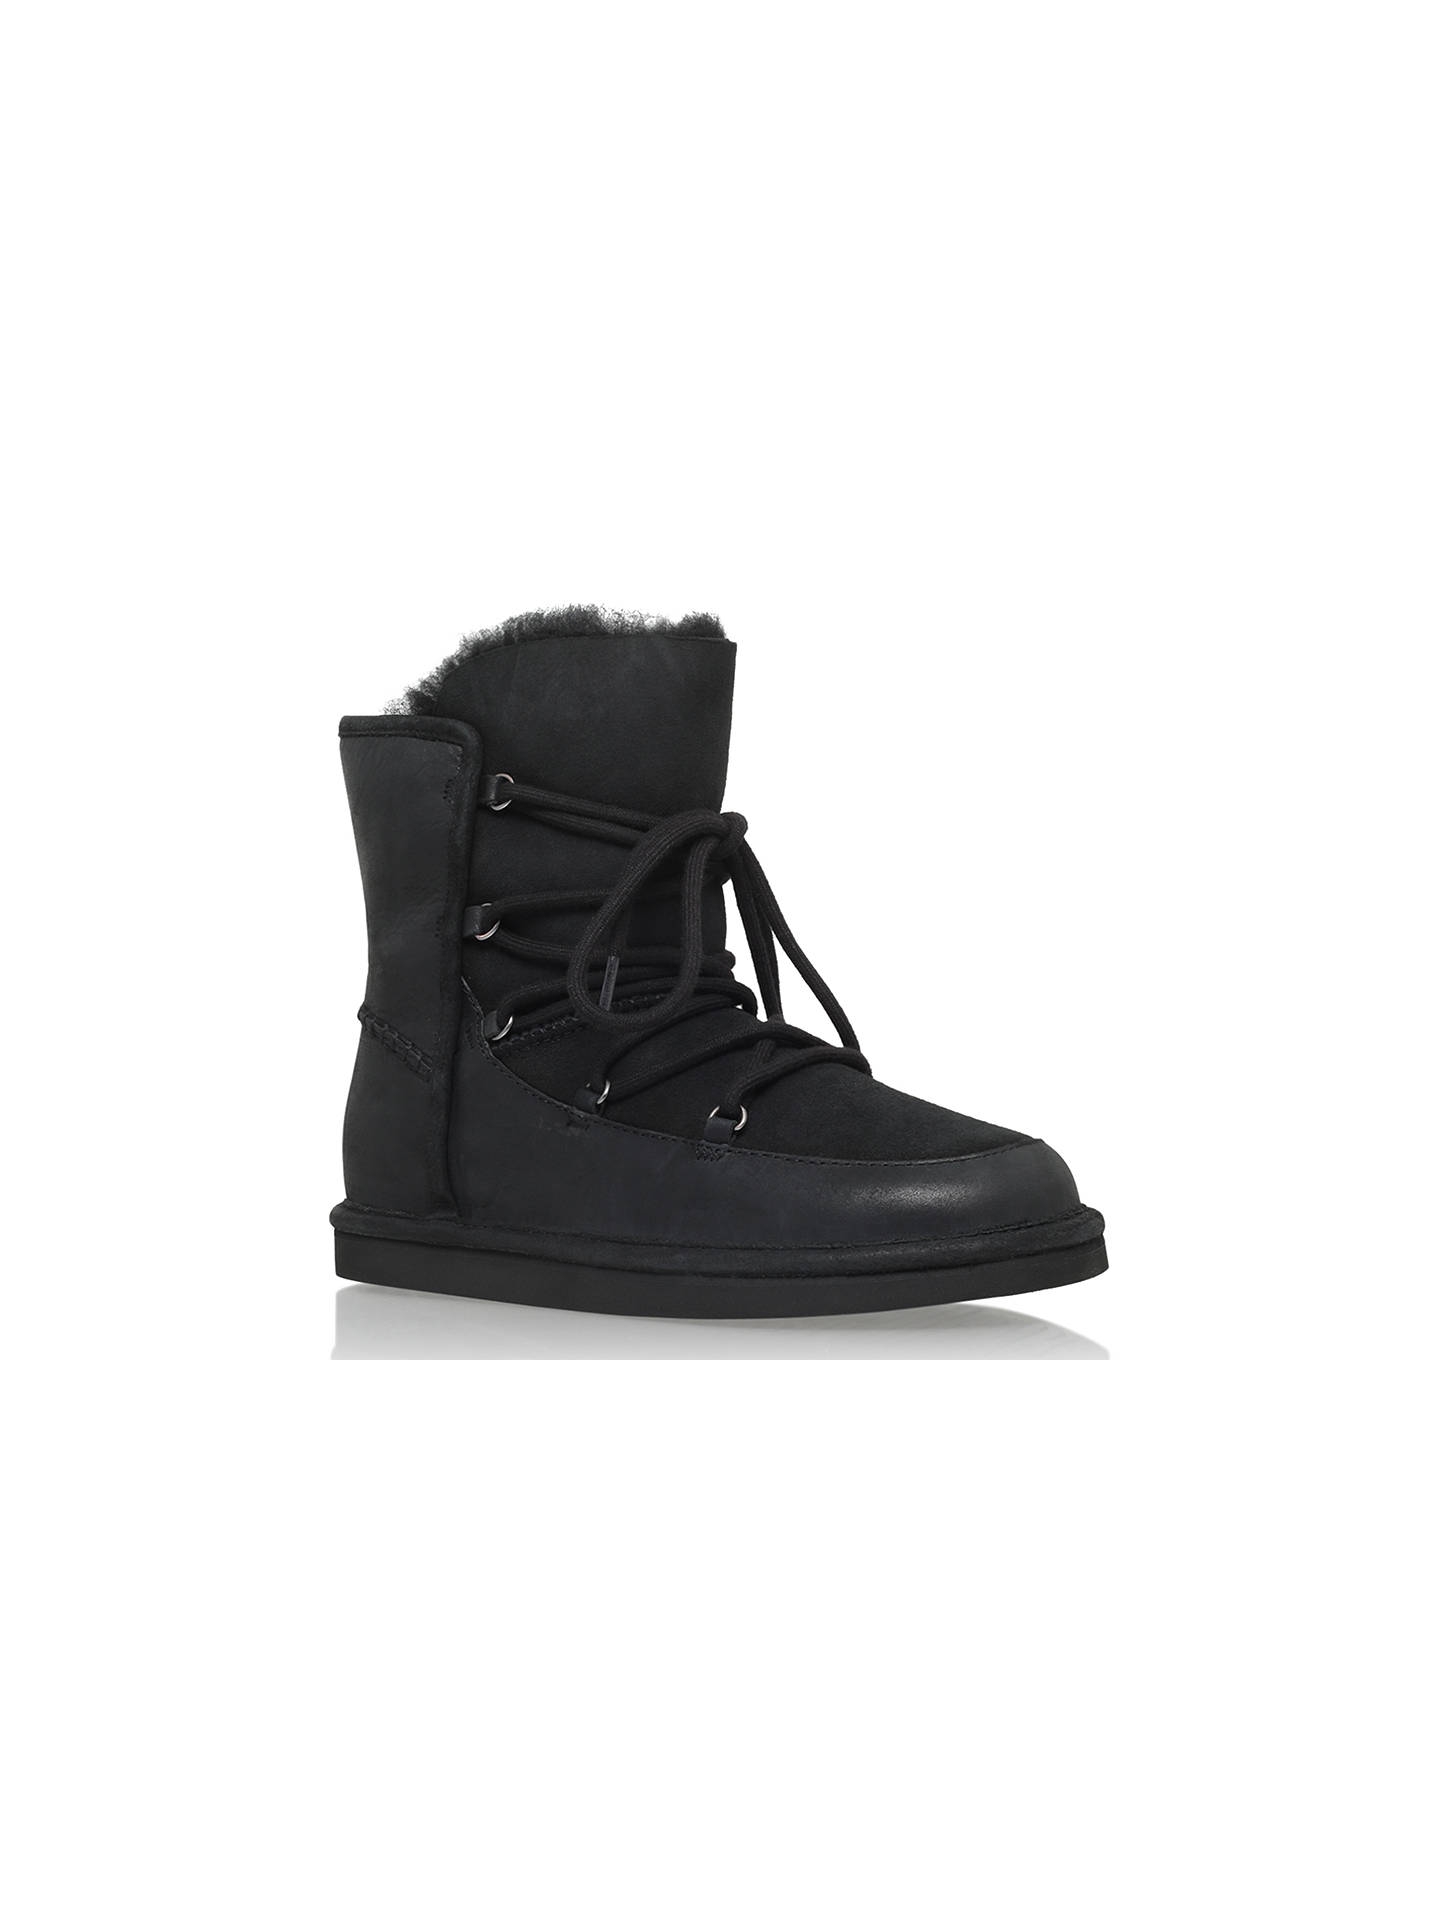 046894edc37 UGG Lodge Lace Up Ankle Boot, Black Leather at John Lewis & Partners